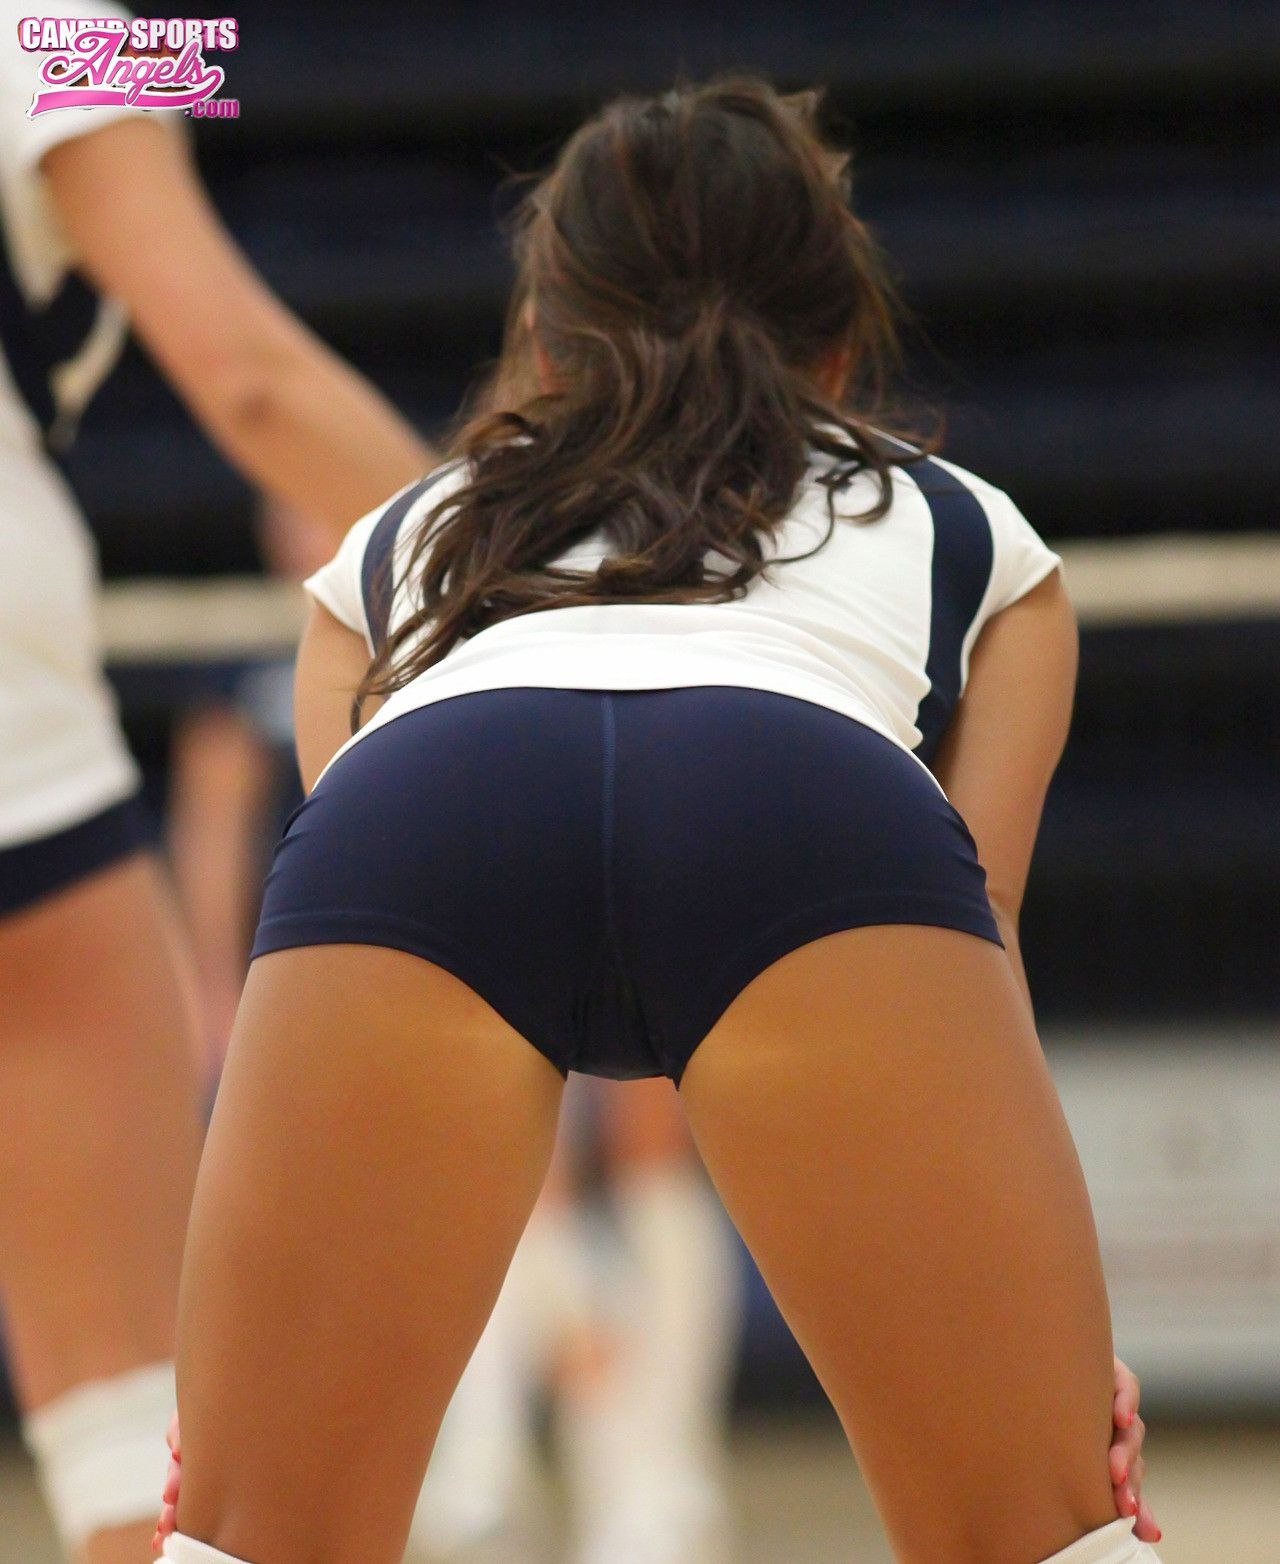 Sexy girl in volleyball shorts